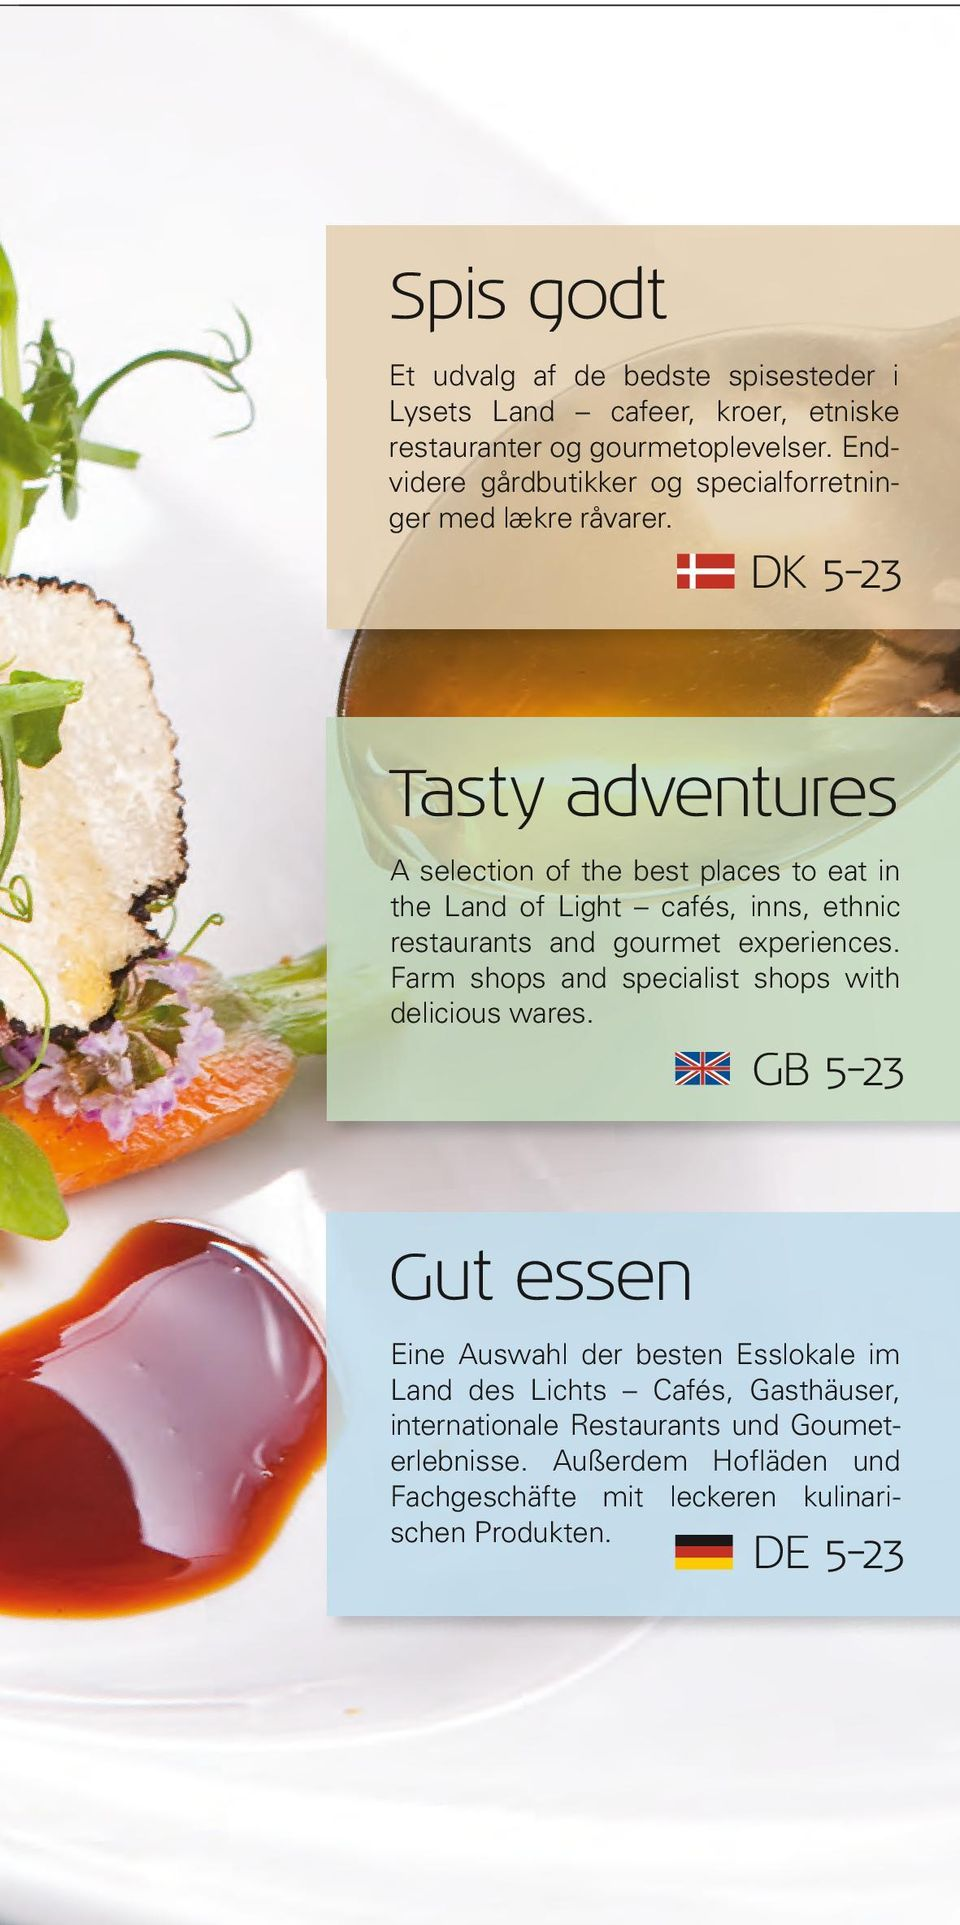 DK 5-23 Tasty adventures A selection of the best places to eat in the Land of Light cafés, inns, ethnic restaurants and gourmet experiences.